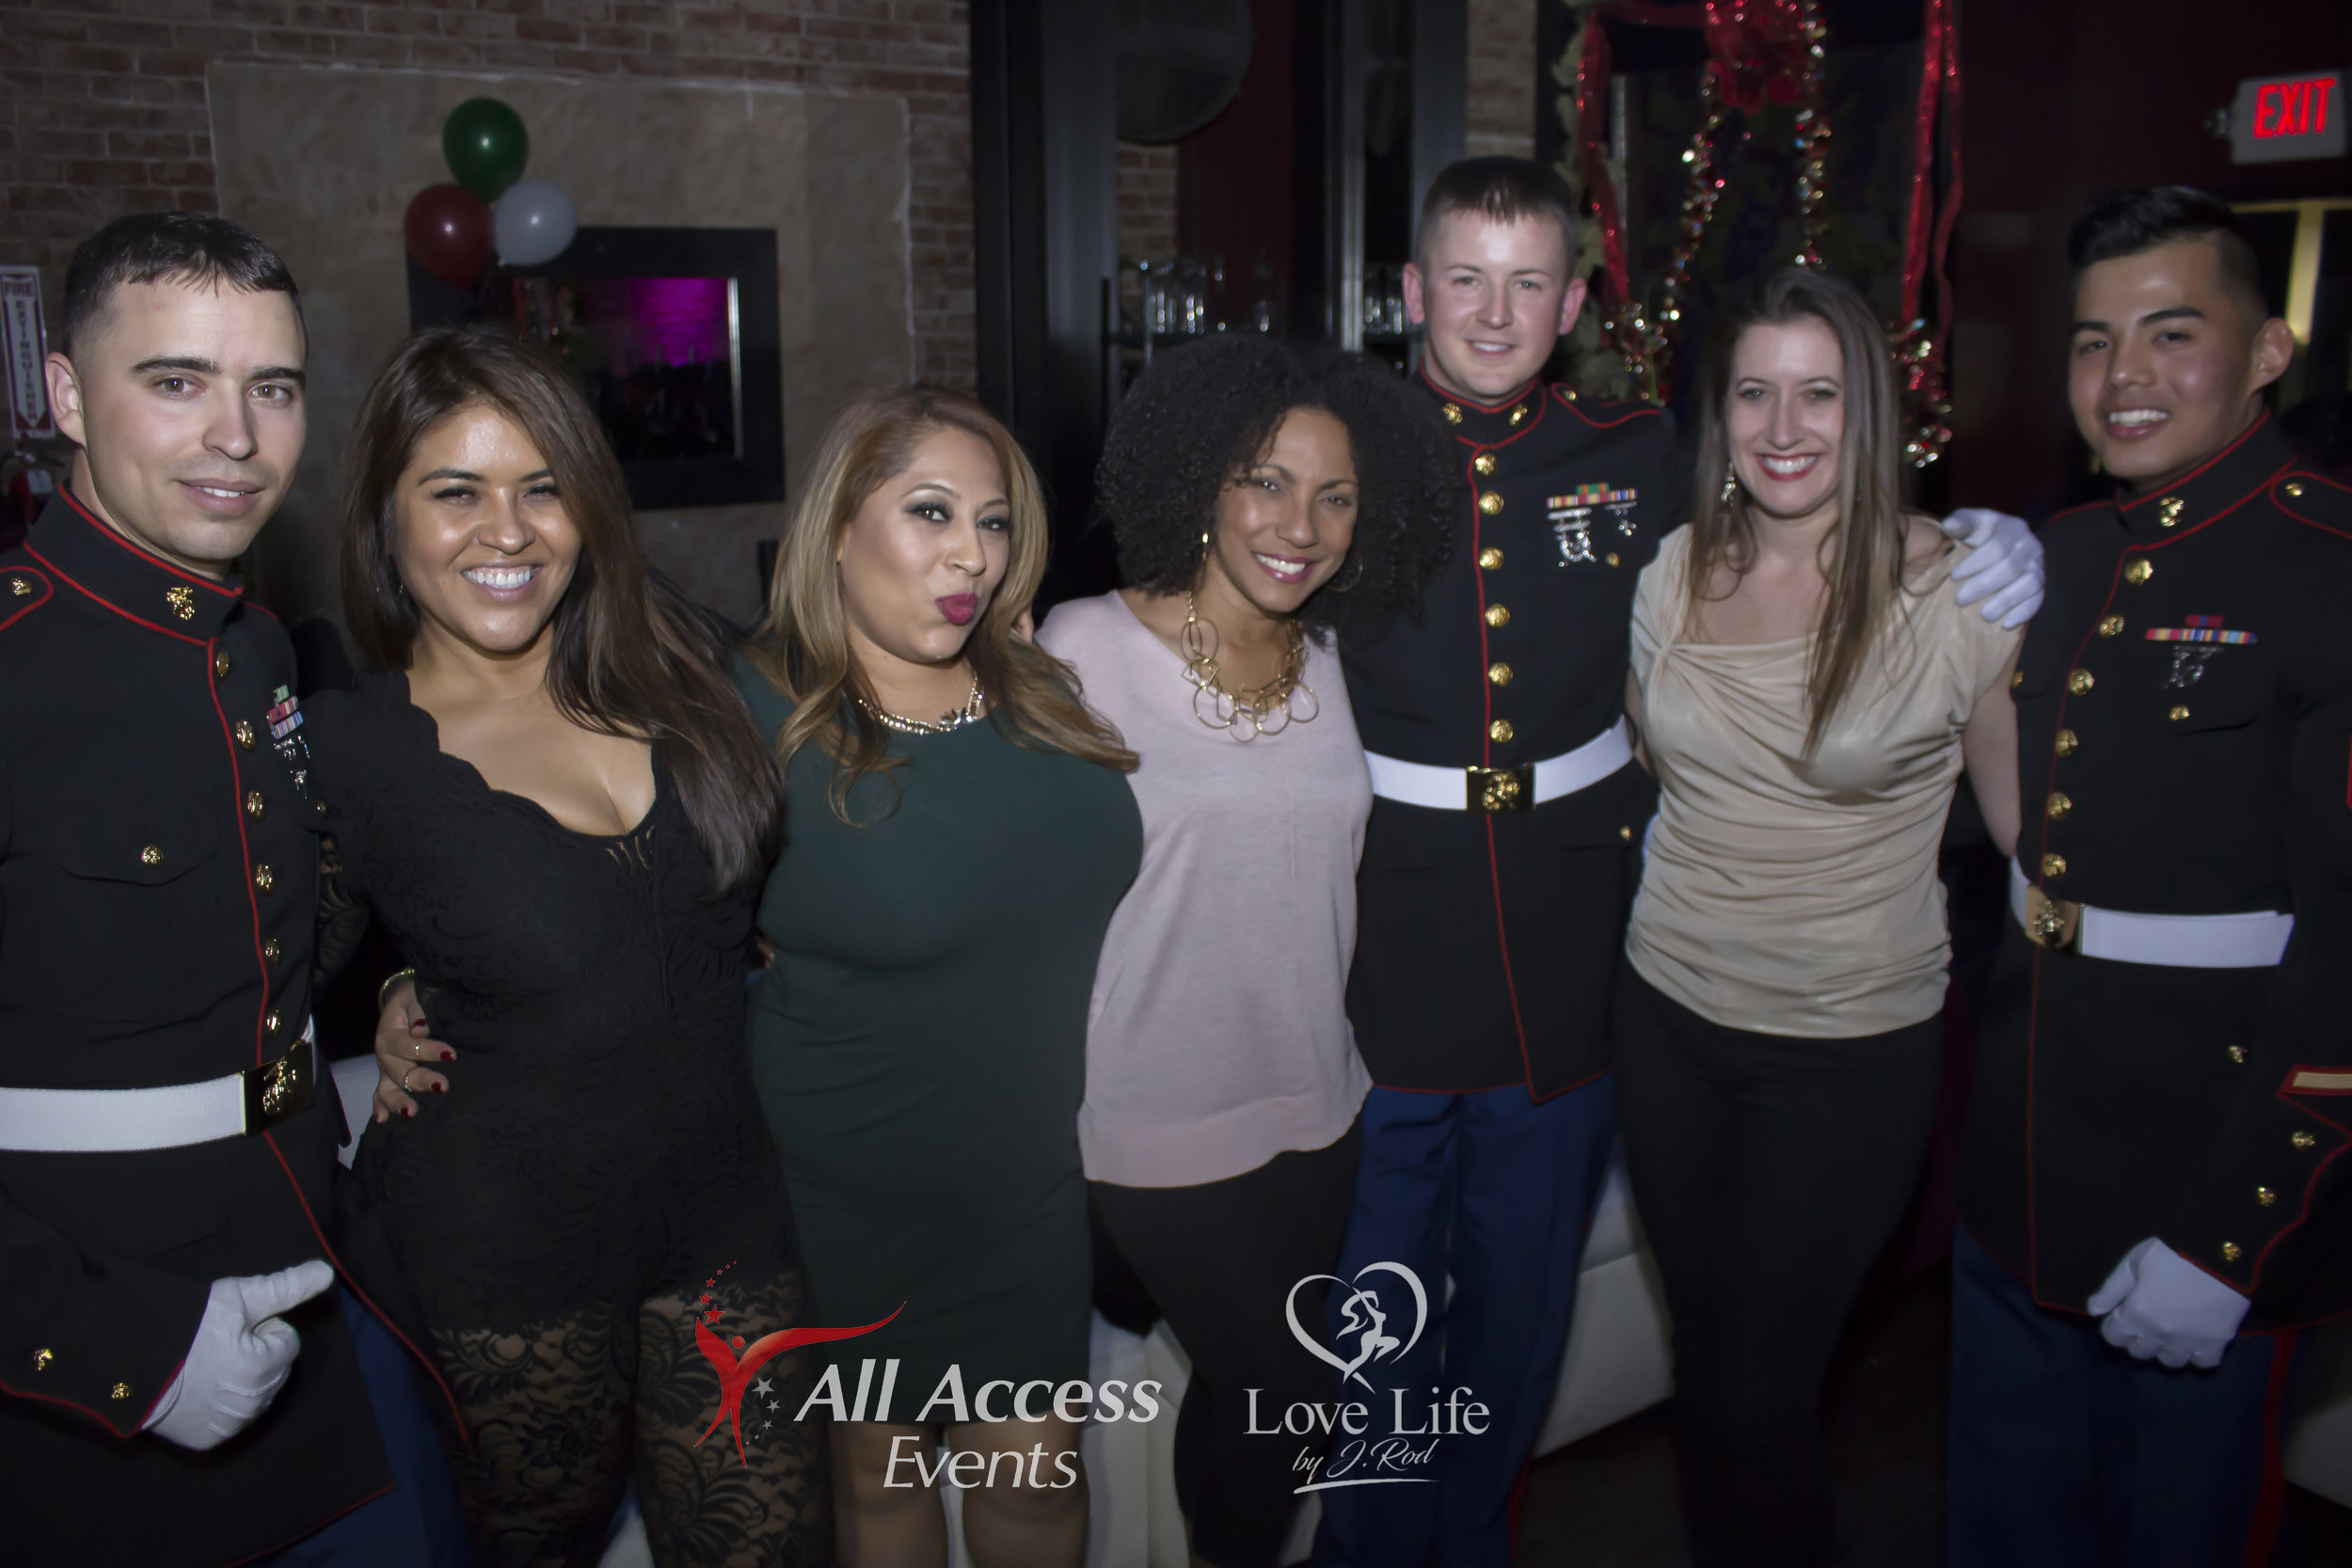 All Access Events Toy Drive_3.jpg